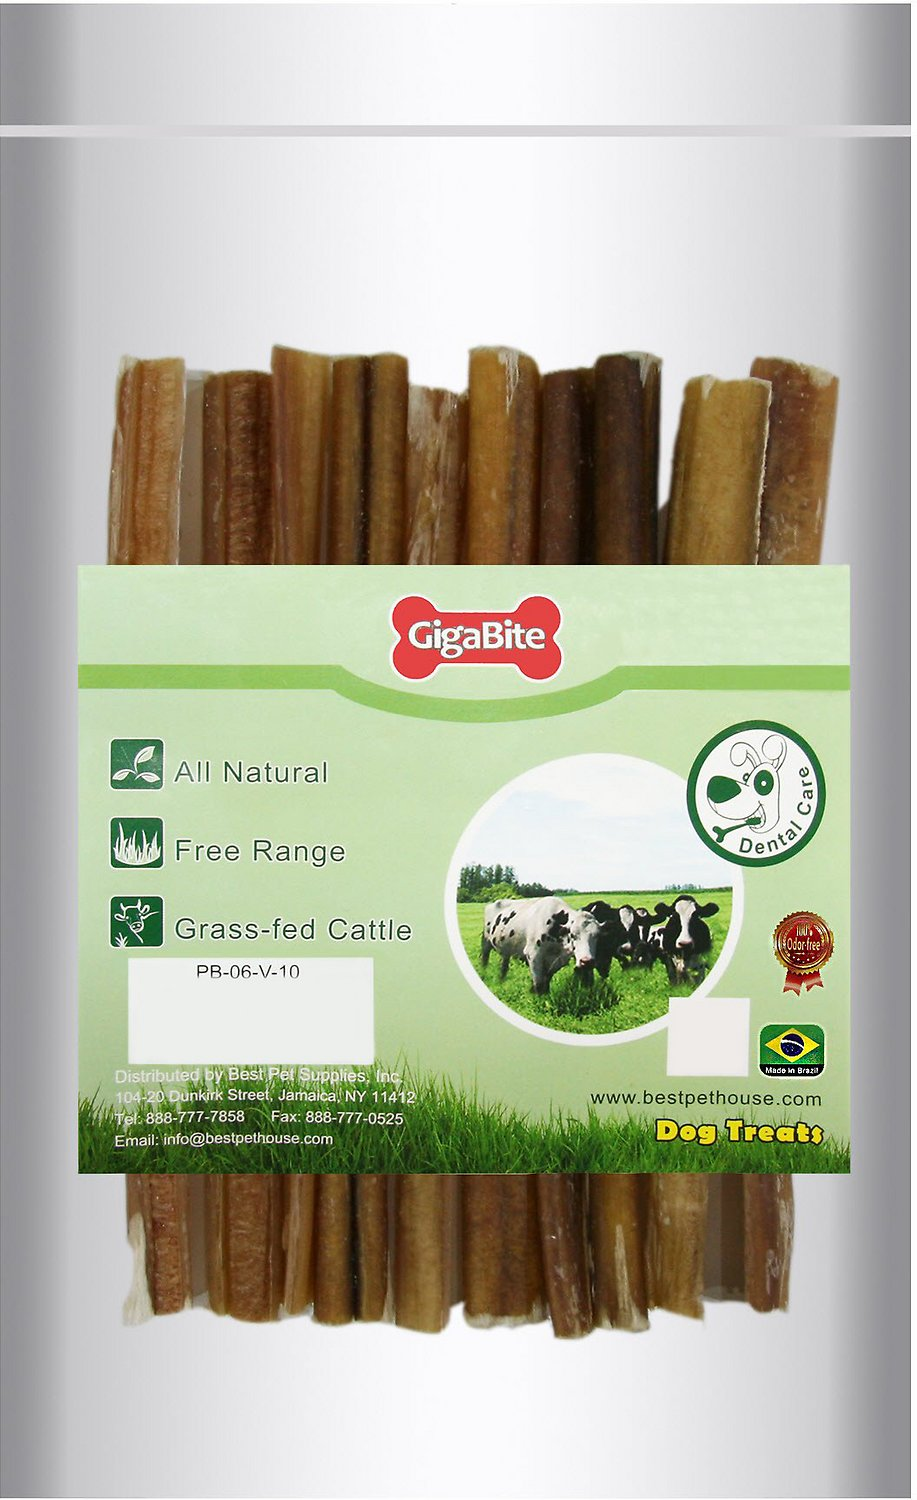 best pet supplies gigabite odor free 6 bully sticks dog treats 10 count. Black Bedroom Furniture Sets. Home Design Ideas